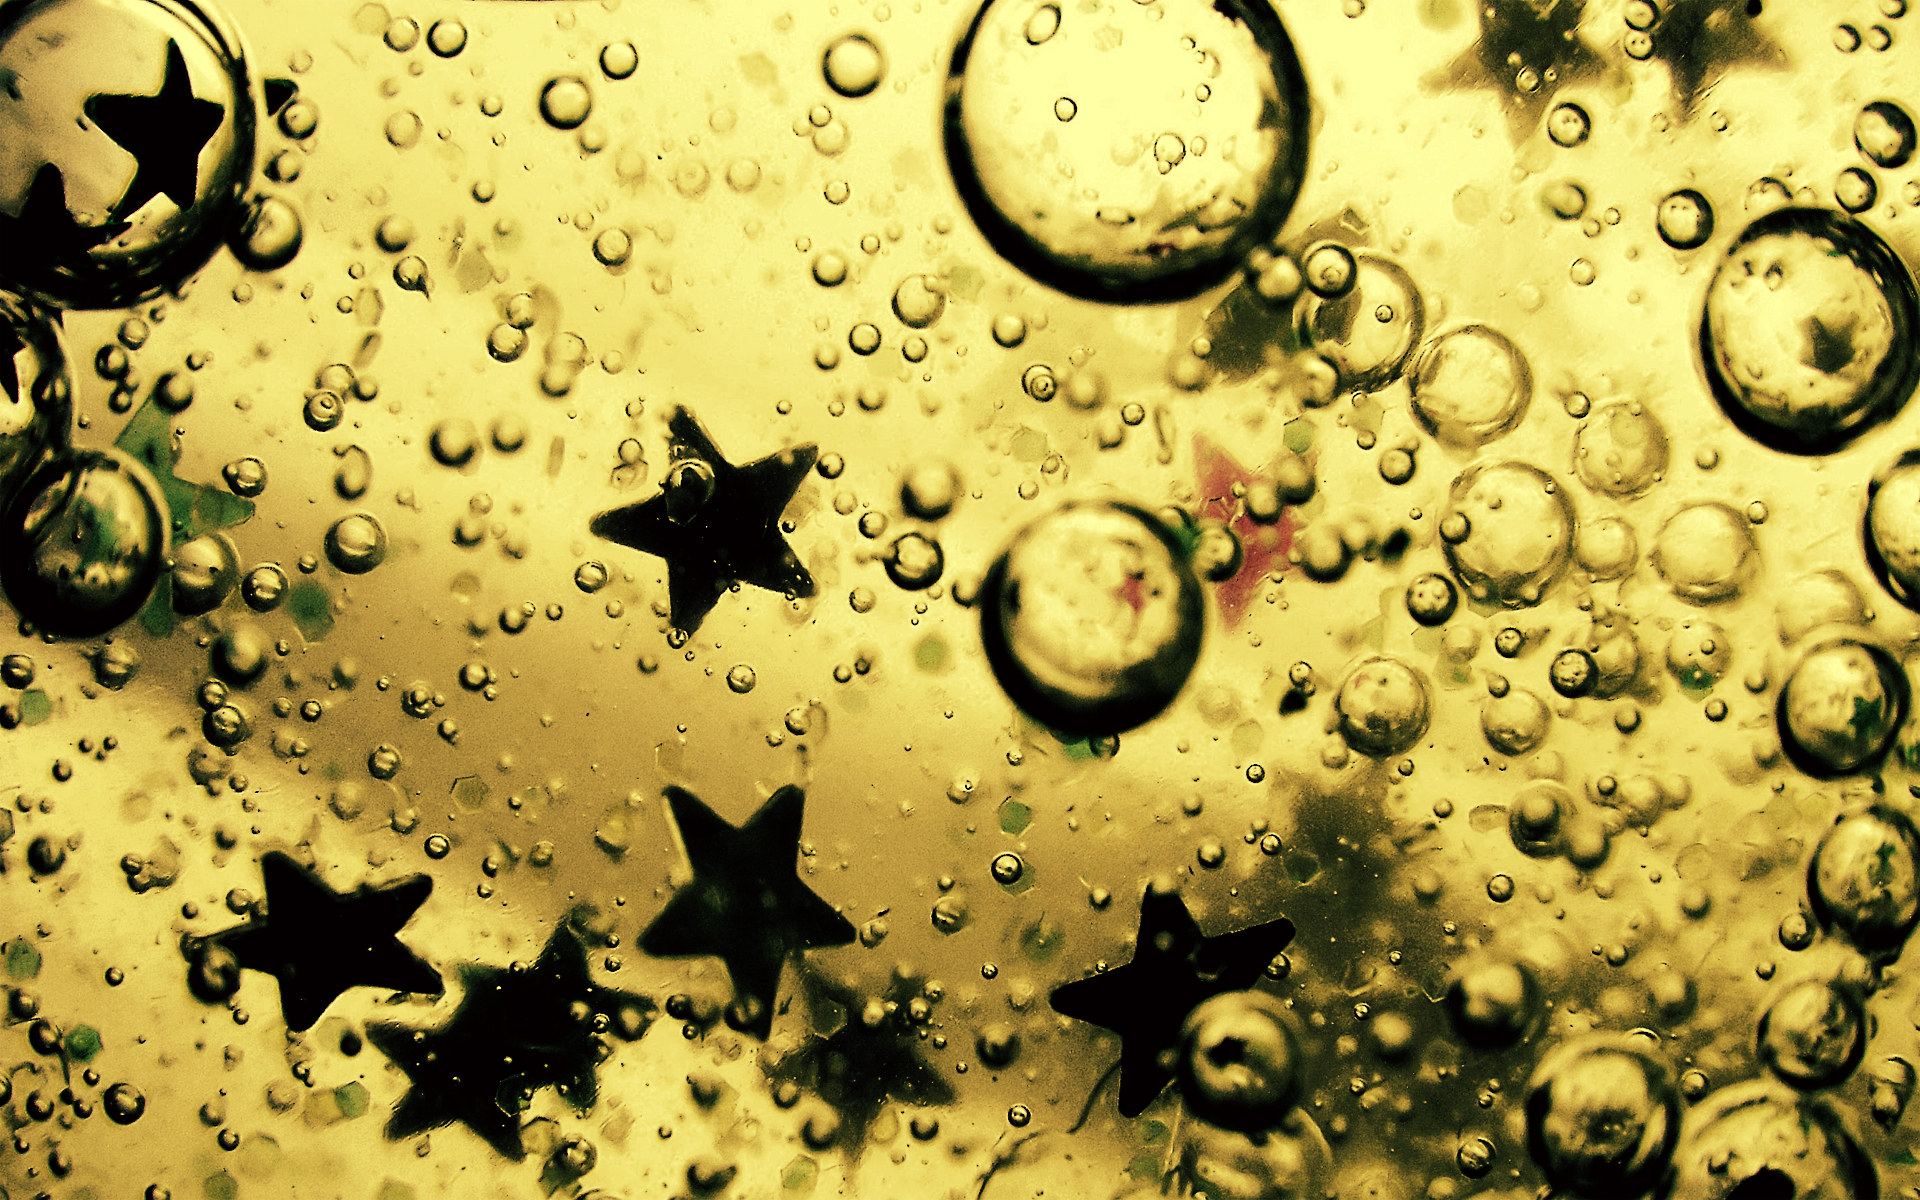 Theme Bin Blog Archive Oil Water and Stars HD Wallpaper 1920x1200